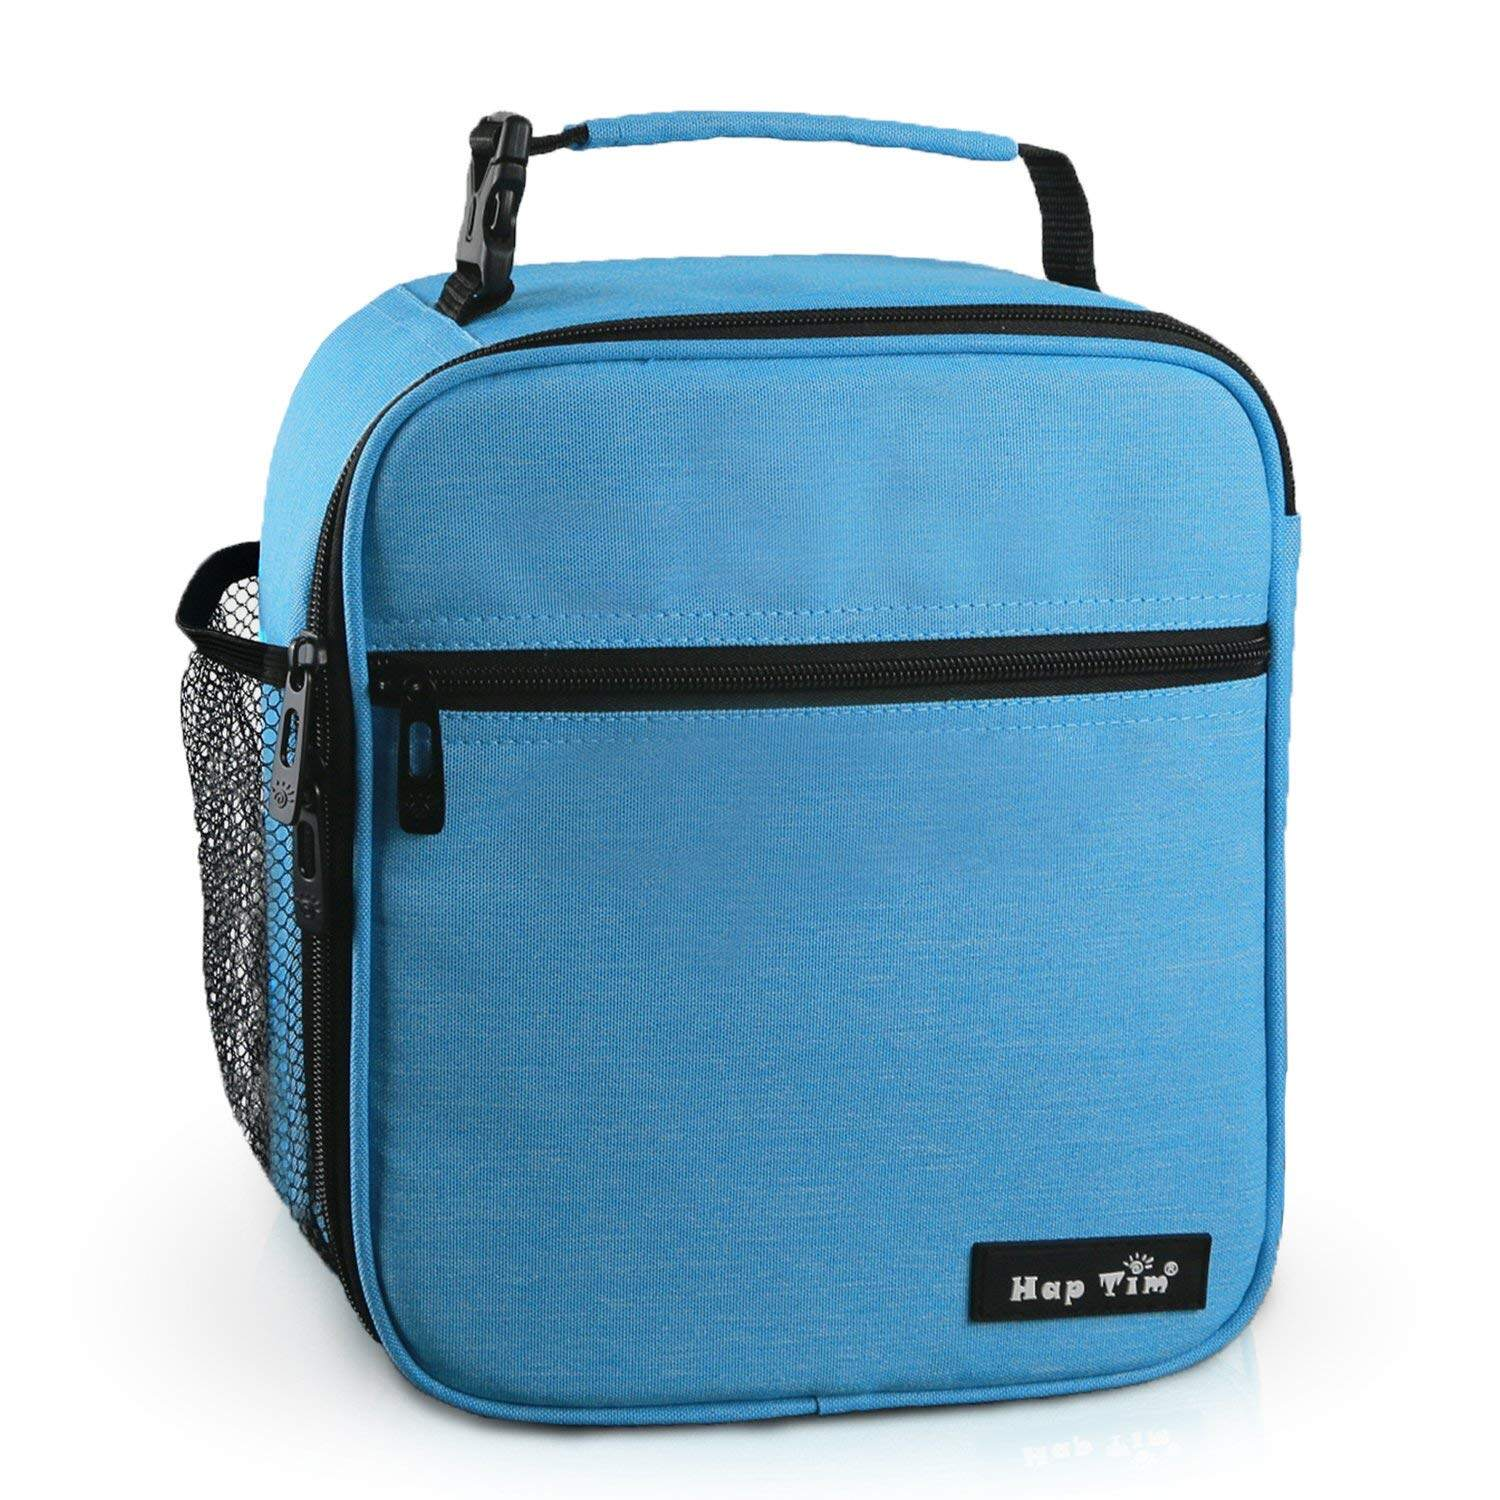 e0569fdac6a9 Hap Tim Insulated Lunch Bag for Men Women,Reusable Lunch Box for Kids  Boys,Spacious Lunchbox Adult (18654-BL)